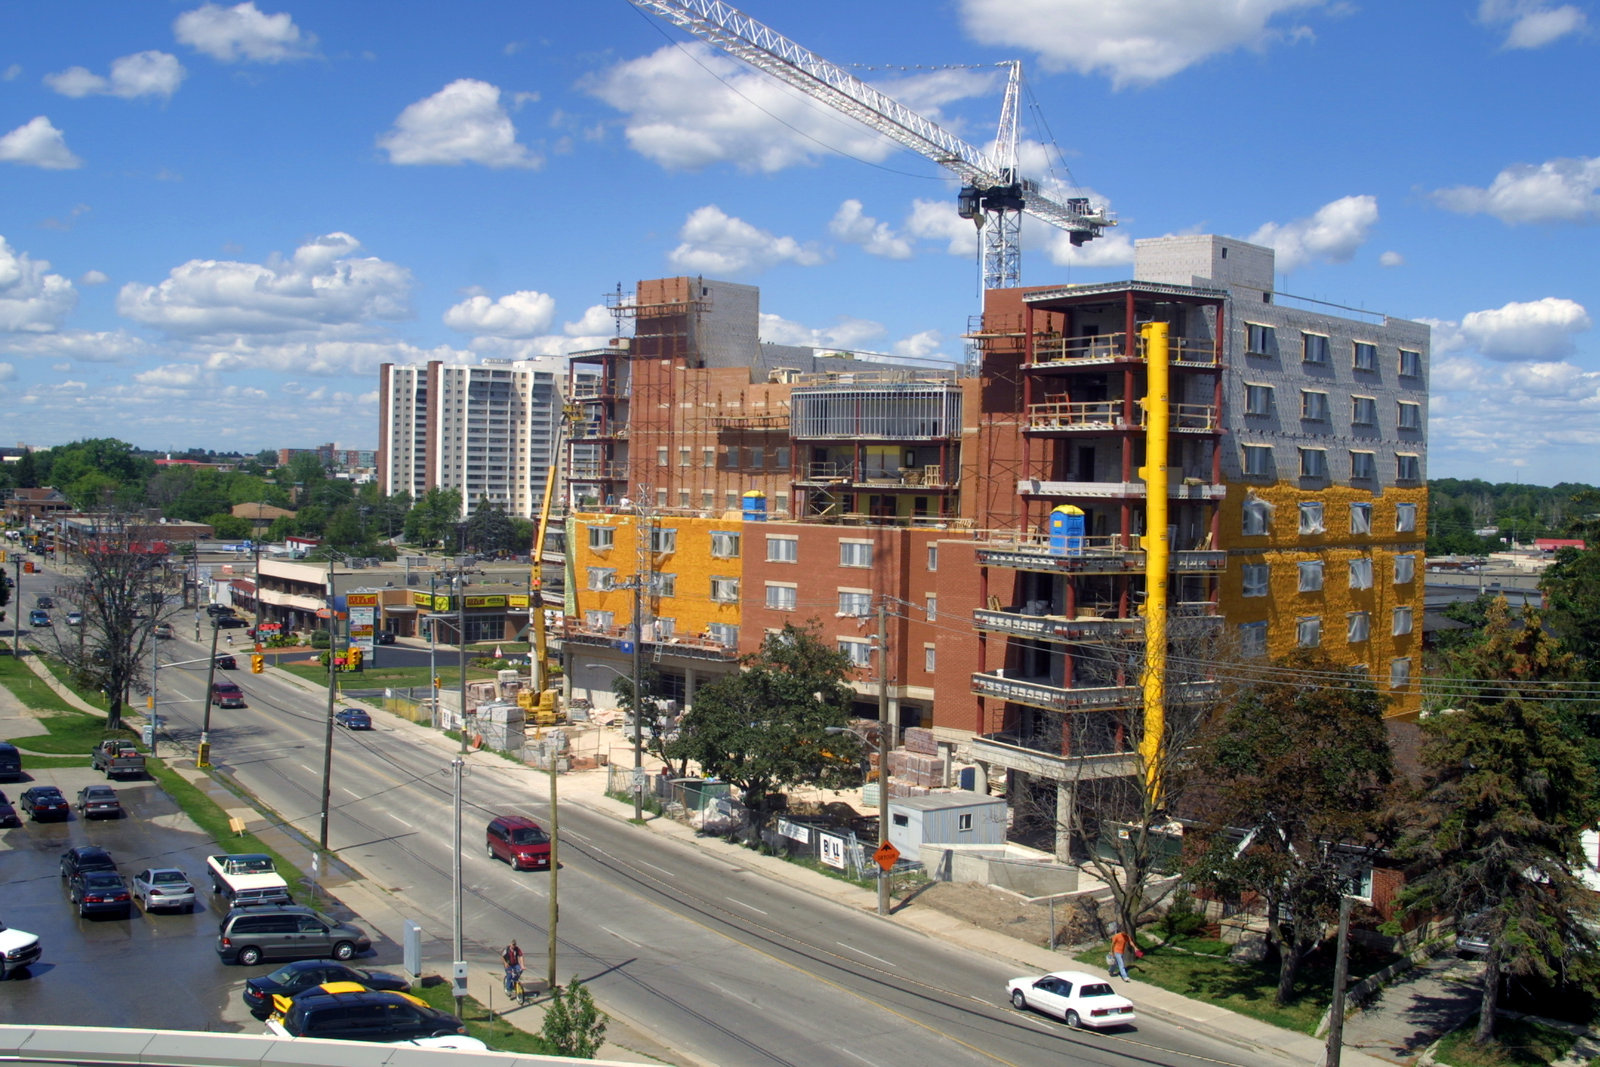 Construction of King Street Residence